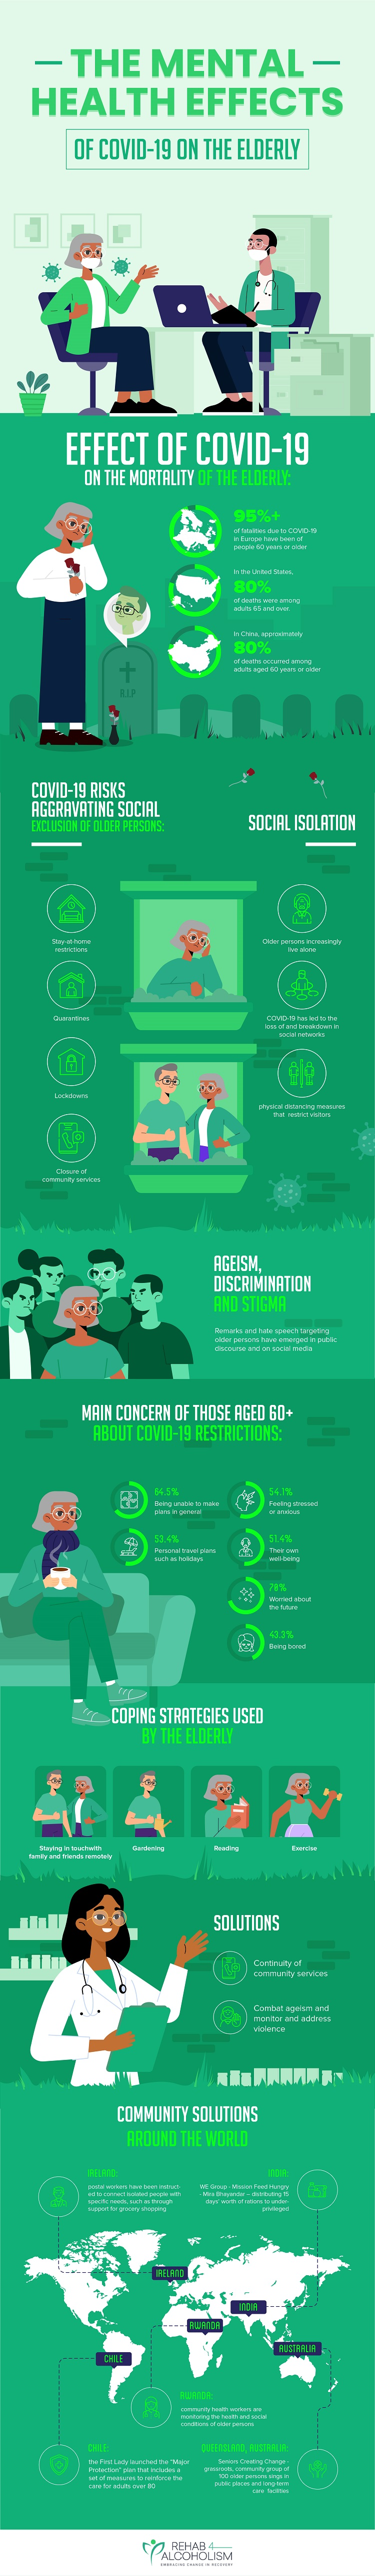 COVID-19 and elderly infographic